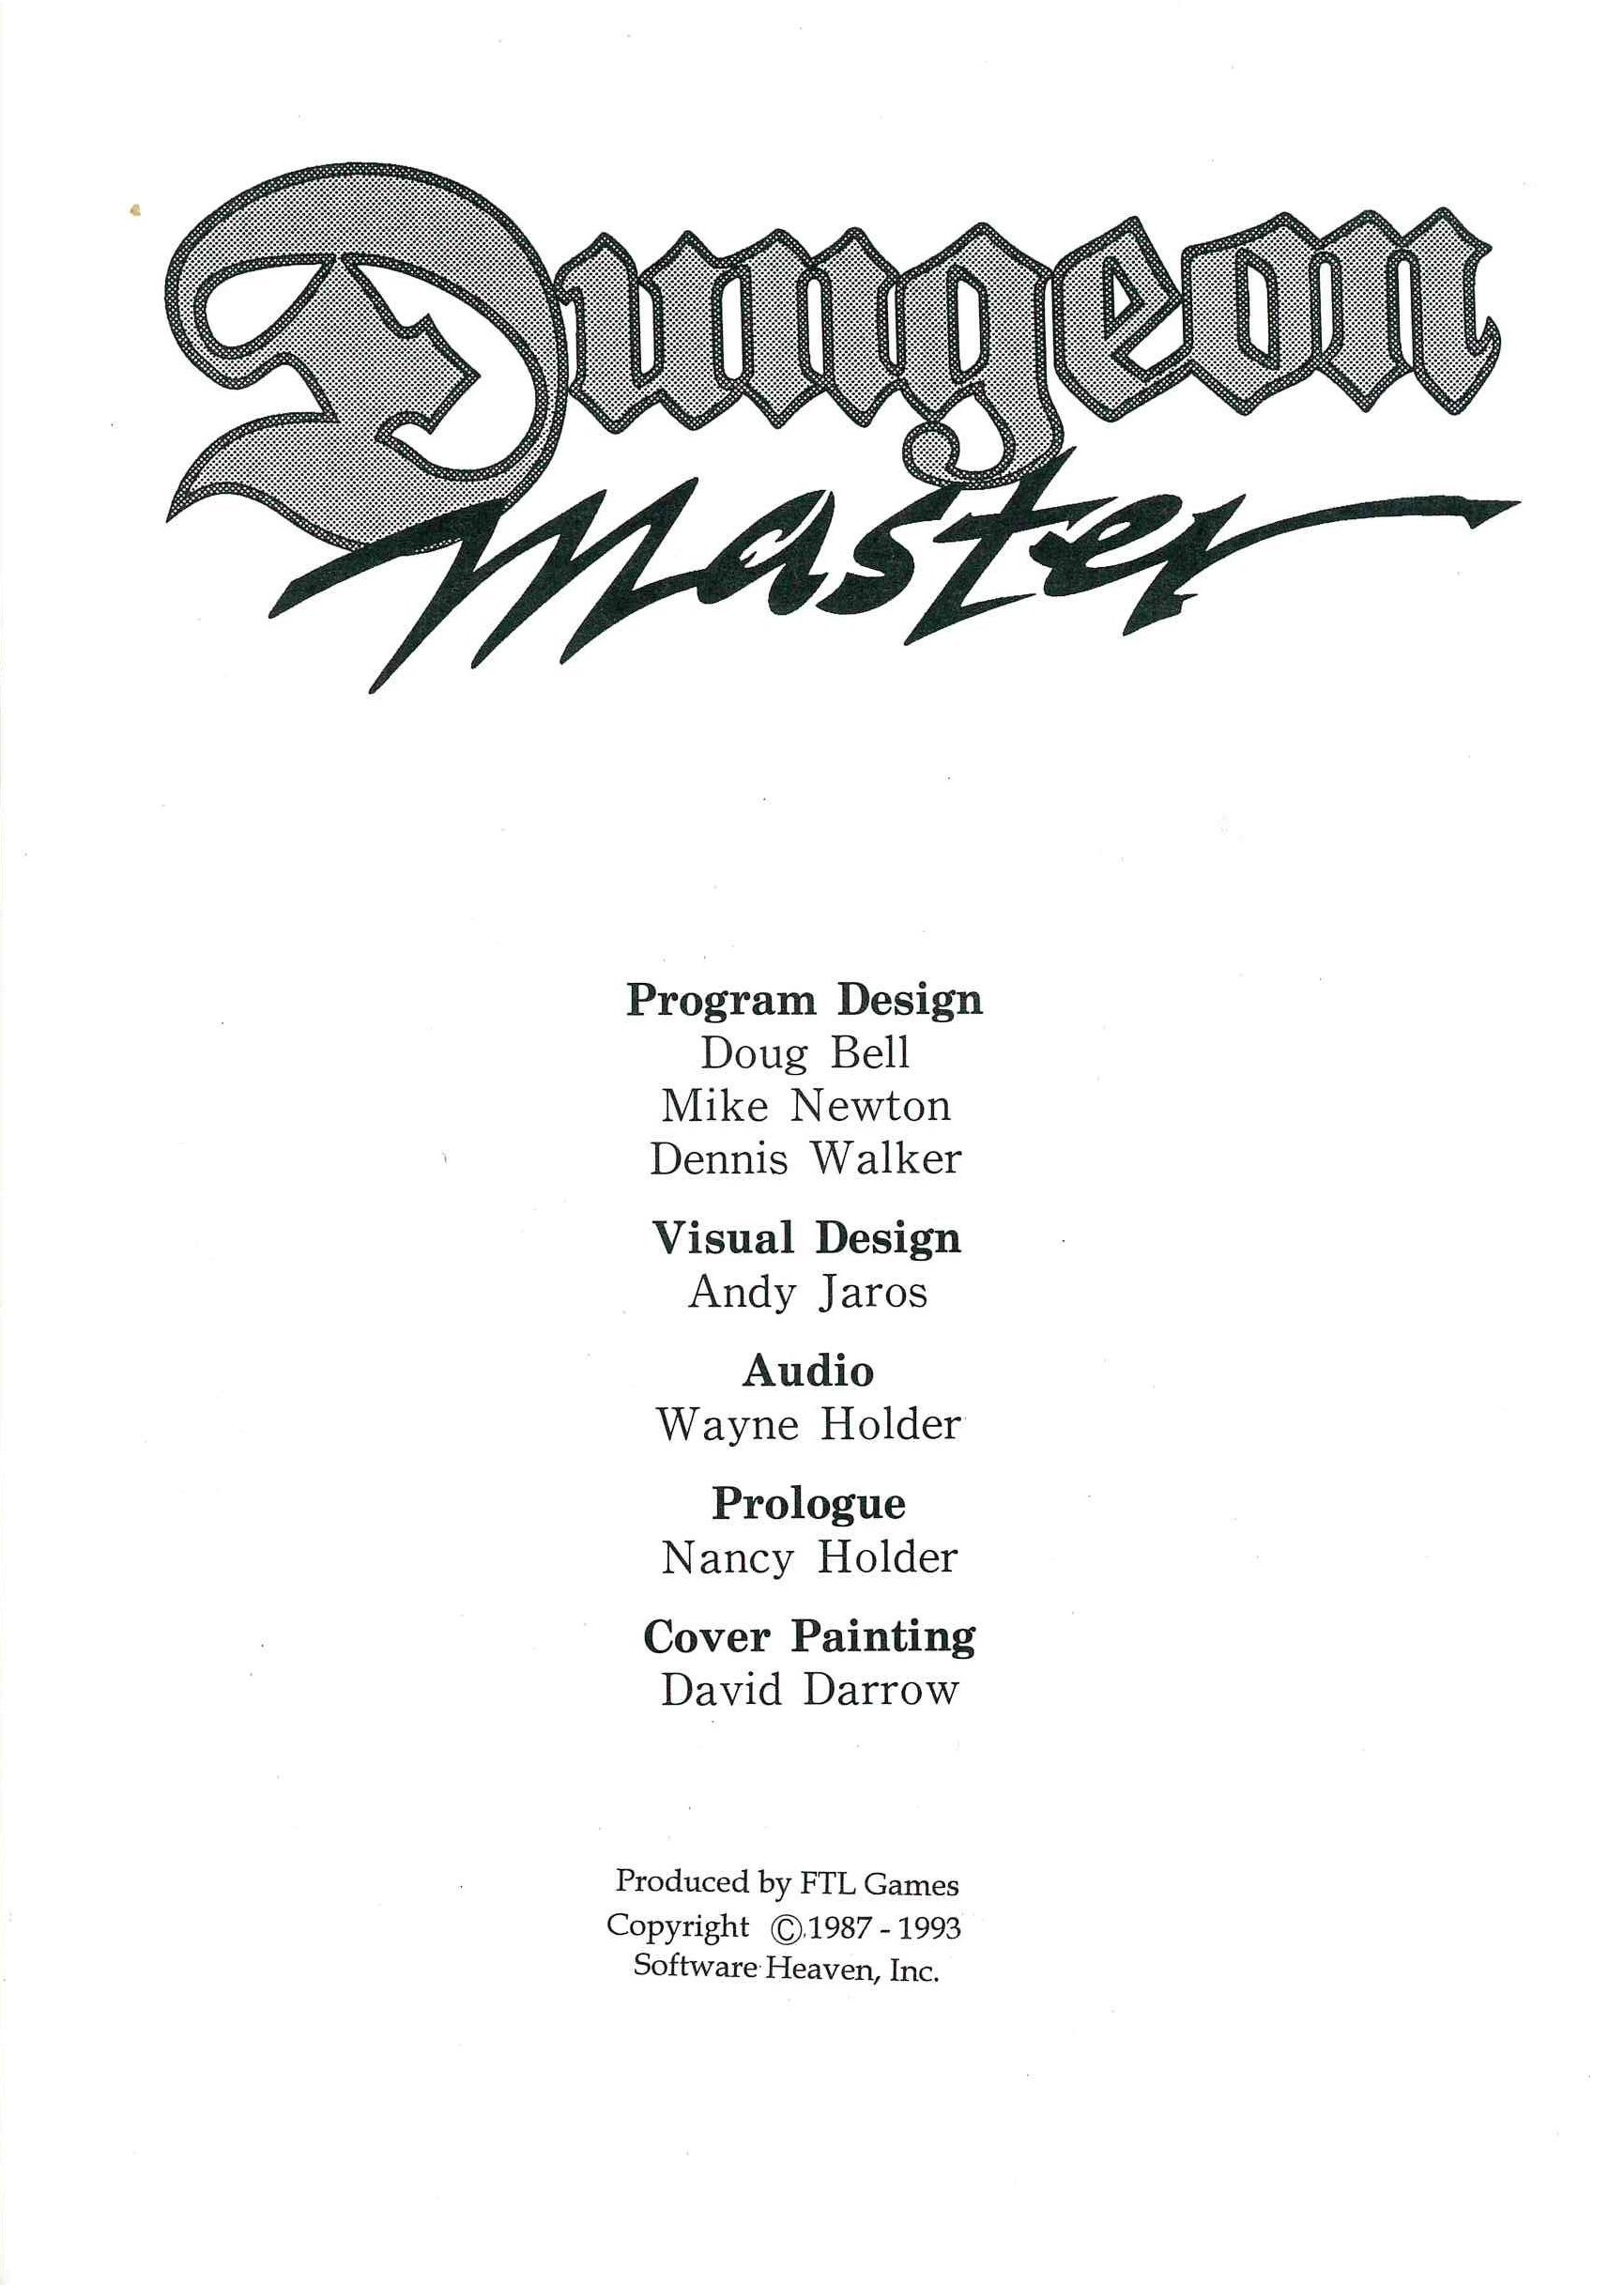 Game - Dungeon Master - CN - PC - Manual - Page 005 - Scan